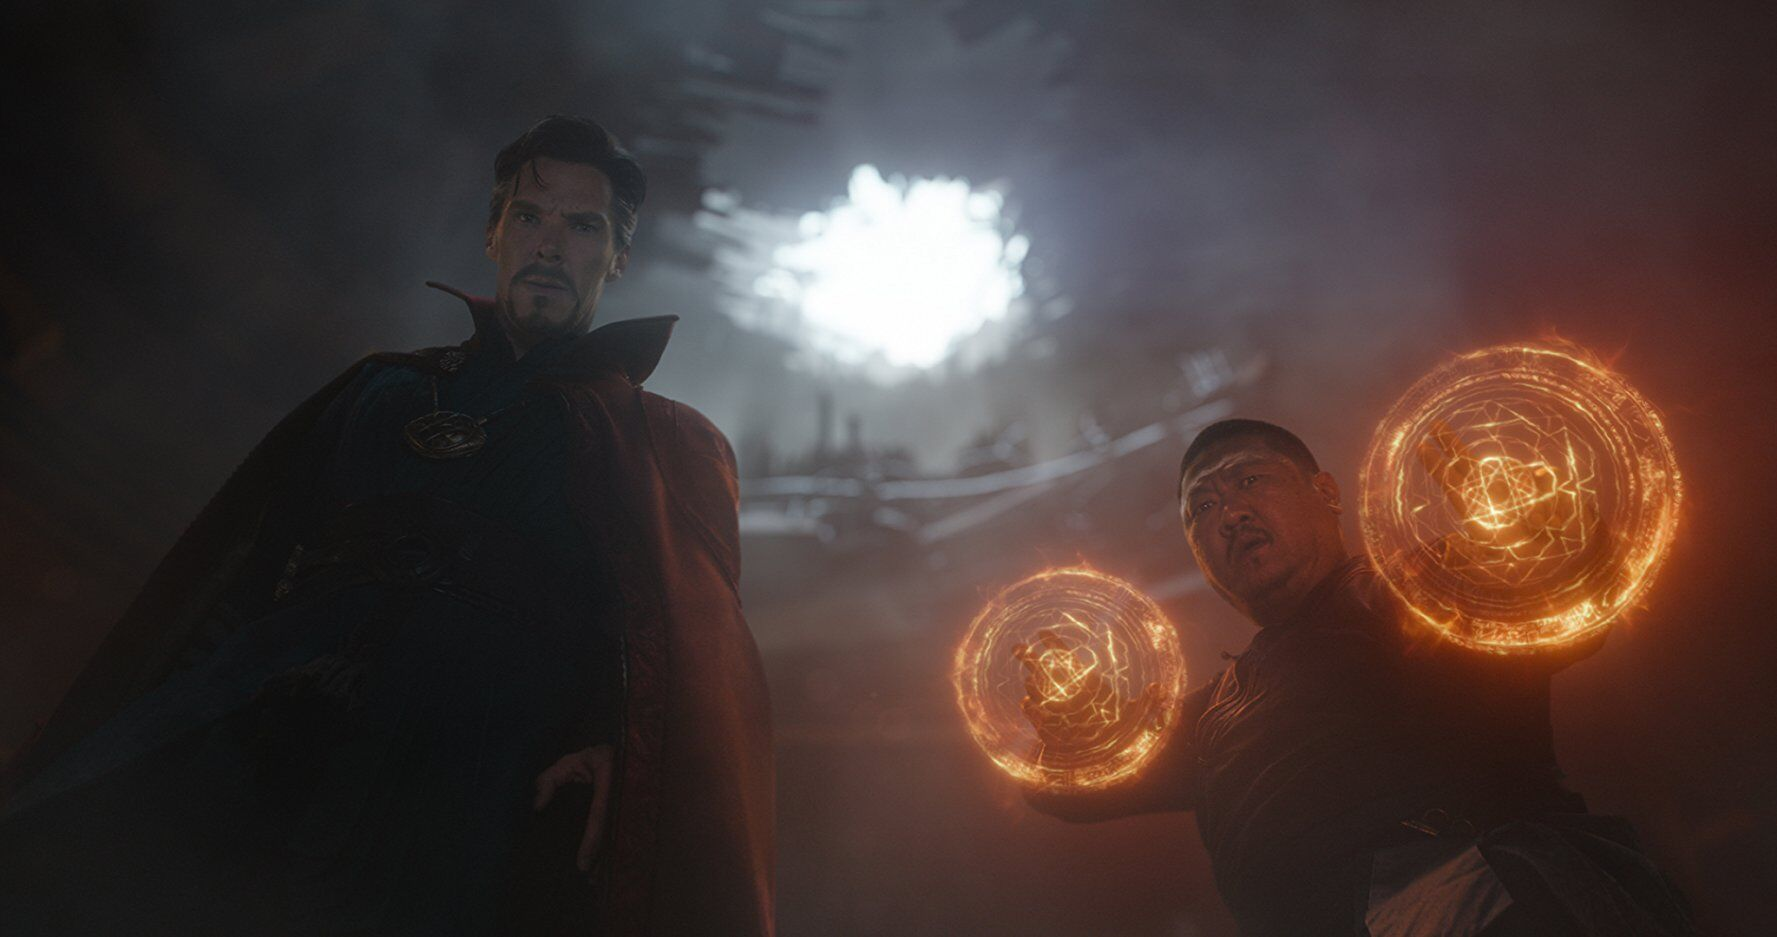 Doctor Strange in the Multiverse of Madness might be directed by Sam Raimi